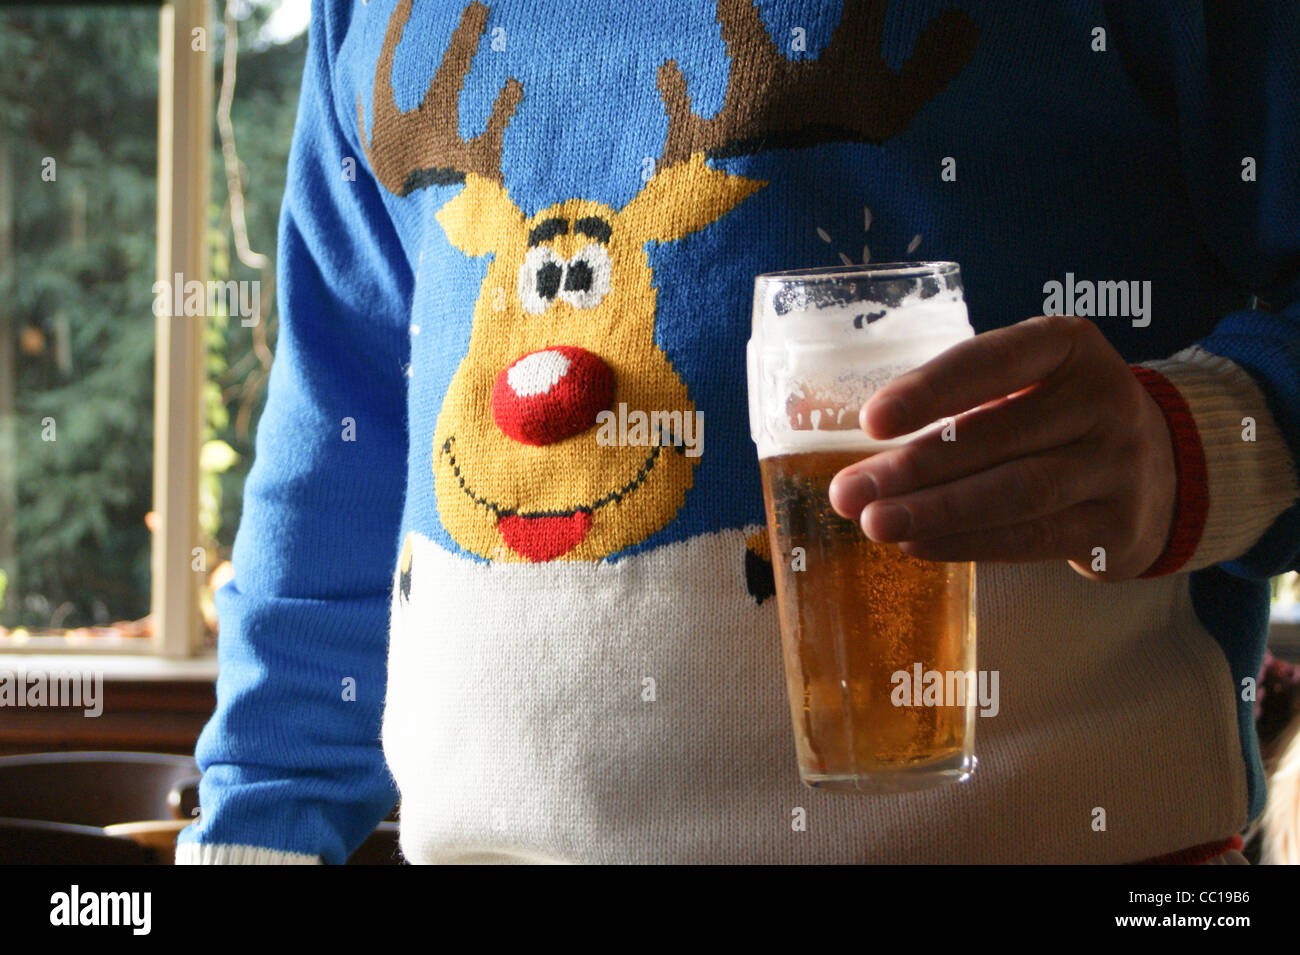 a-man-with-a-pint-of-fosters-lager-beer-in-a-christmas-jumper-with-CC19B6.jpg